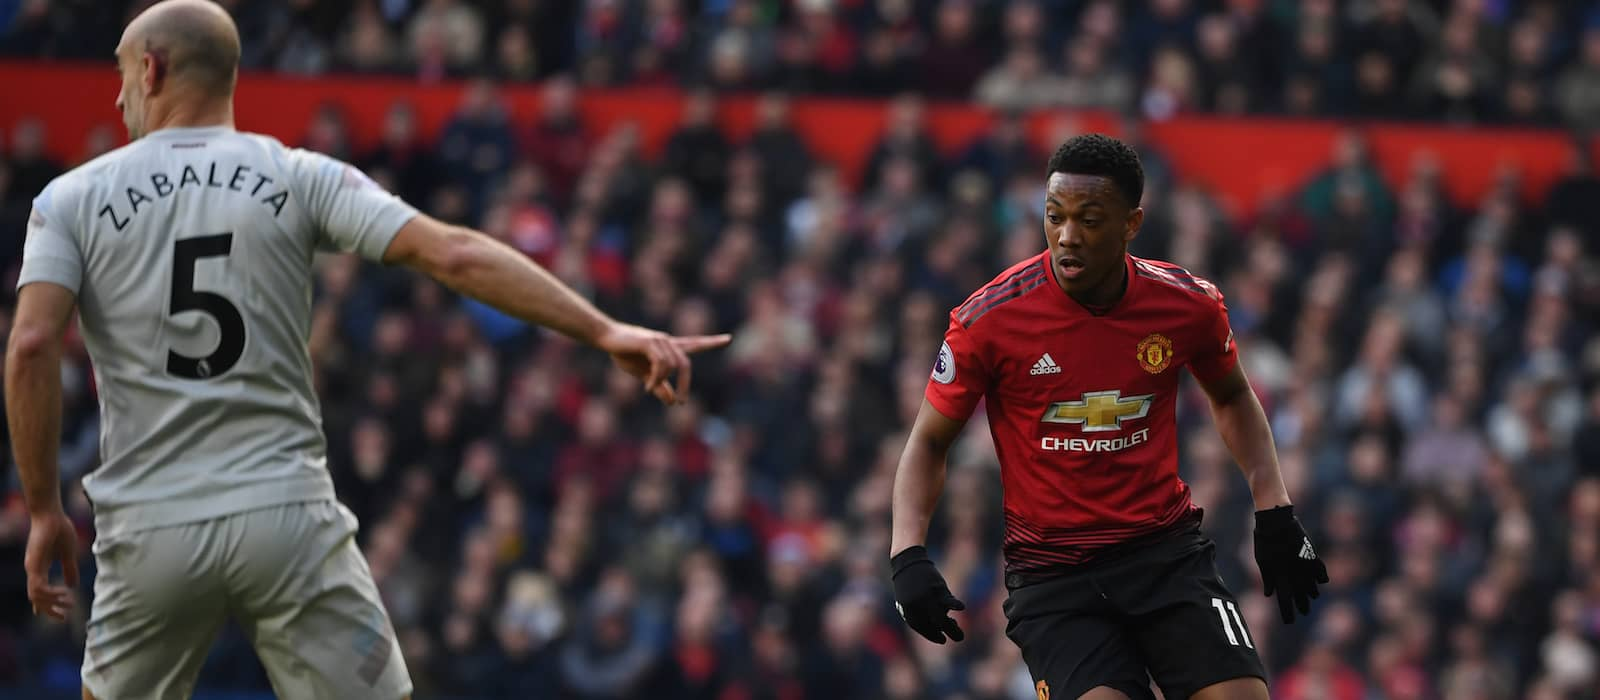 Official: Anthony Martial to wear No.9 at Manchester United following Romelu Lukaku departure